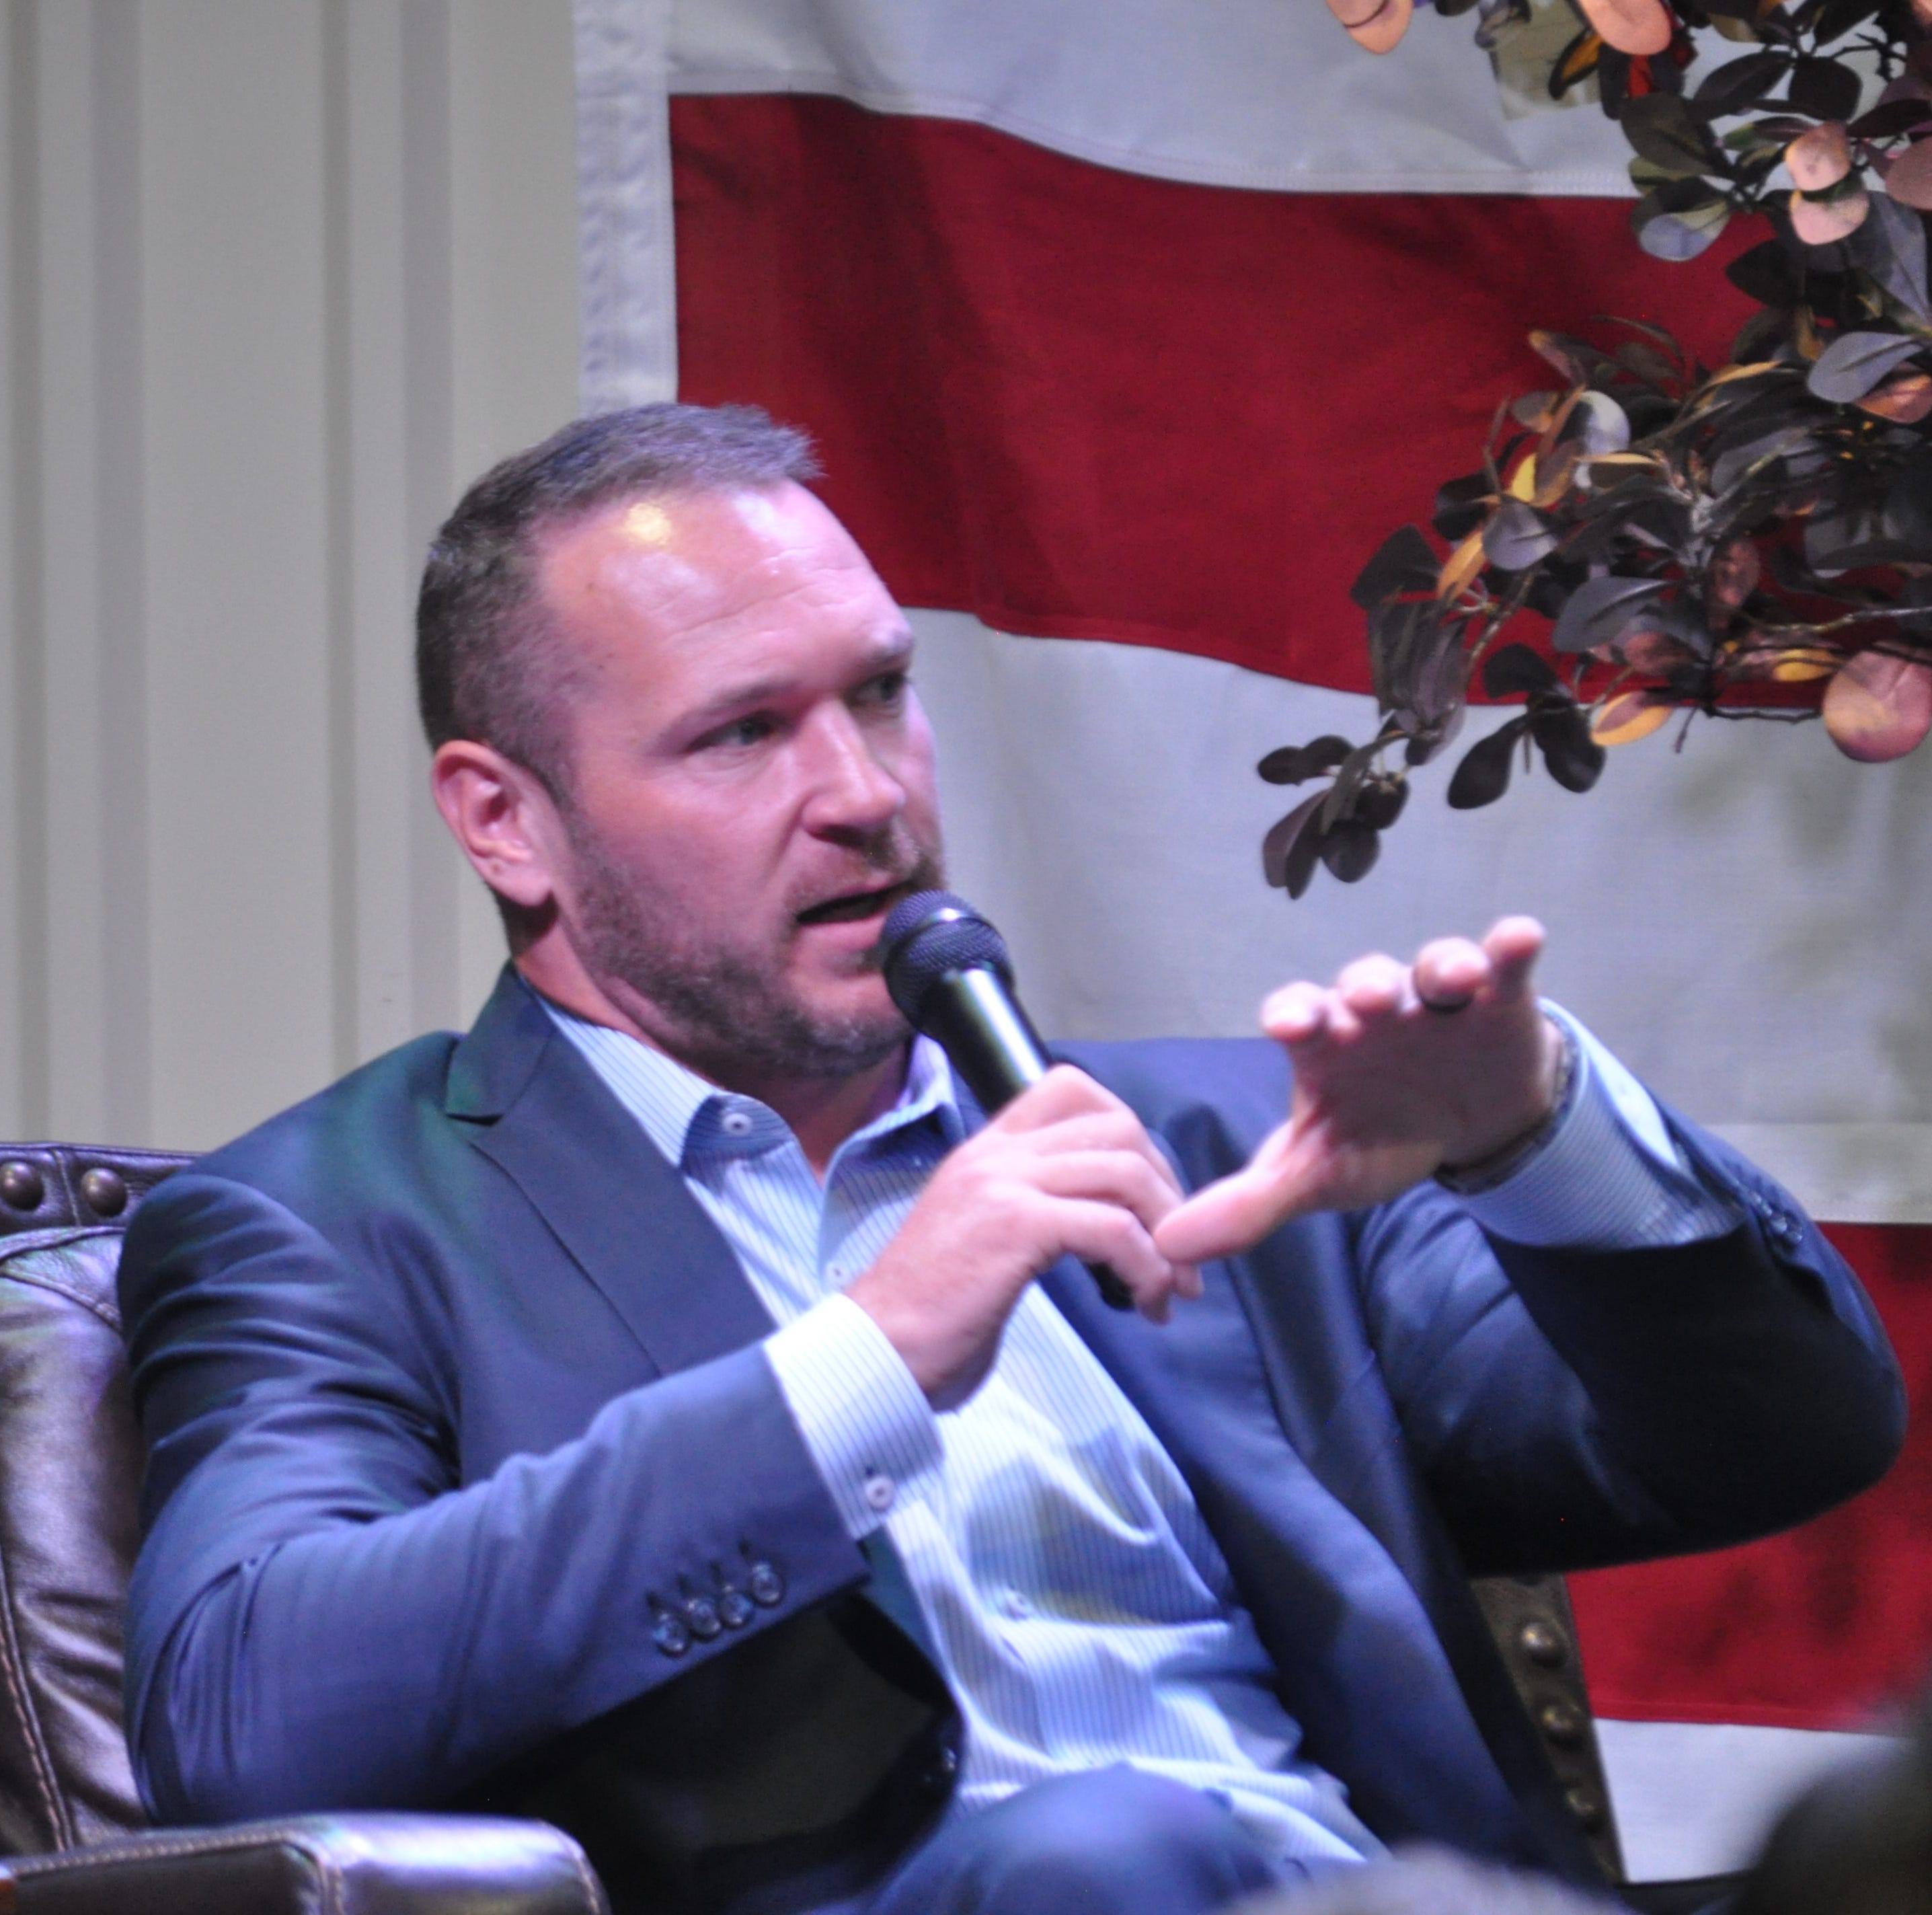 Brian Urlacher appearance a big hit with local athletes